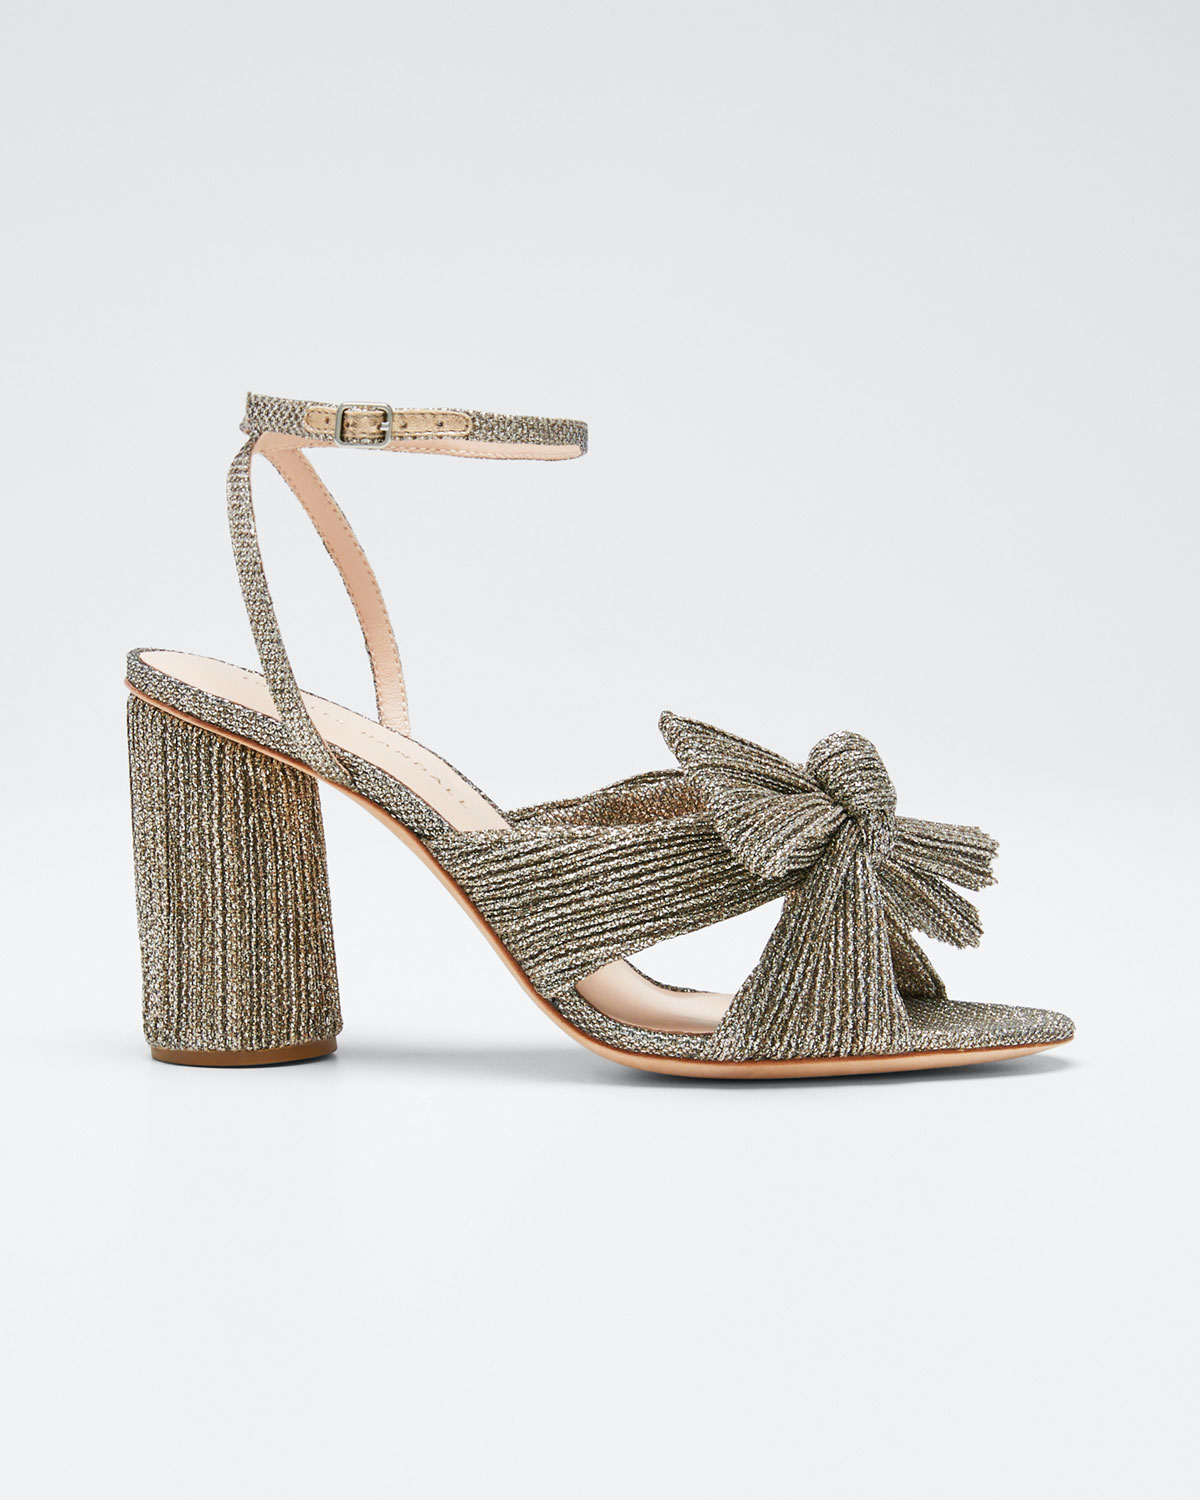 Loeffler Randall Sandals CAMELLIA KNOTTED ANKLE-STRAP SANDALS